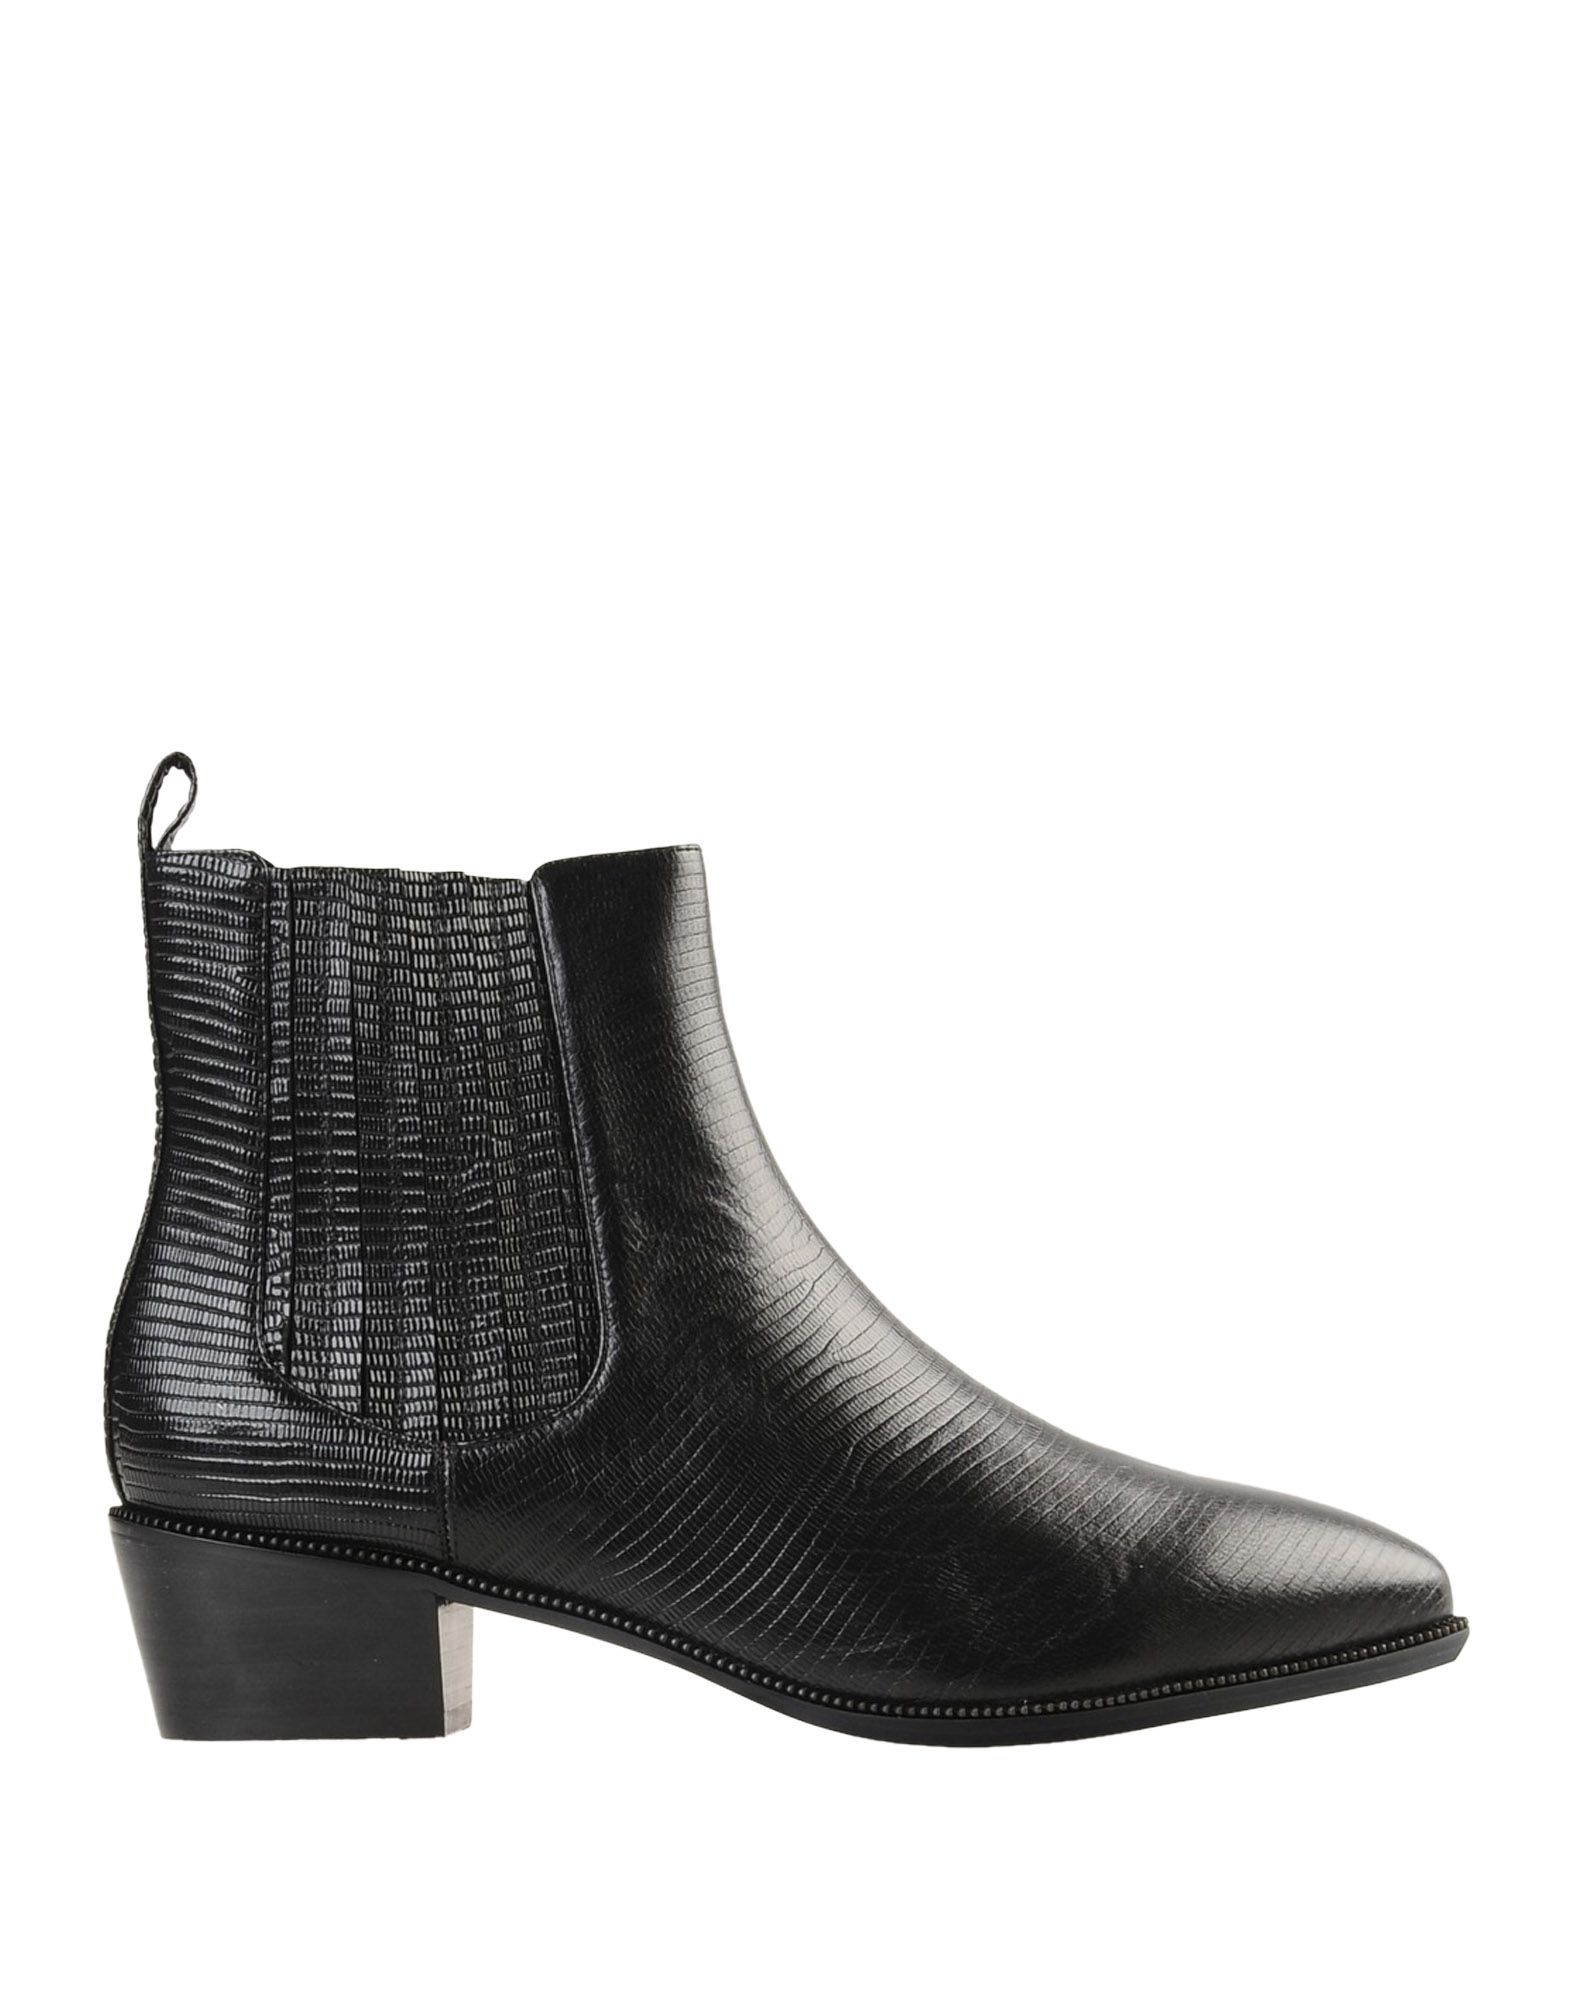 Senso Louie - Ankle Boot - Women on Senso Ankle Boots online on Women  United Kingdom - 11556405AB 406b7b